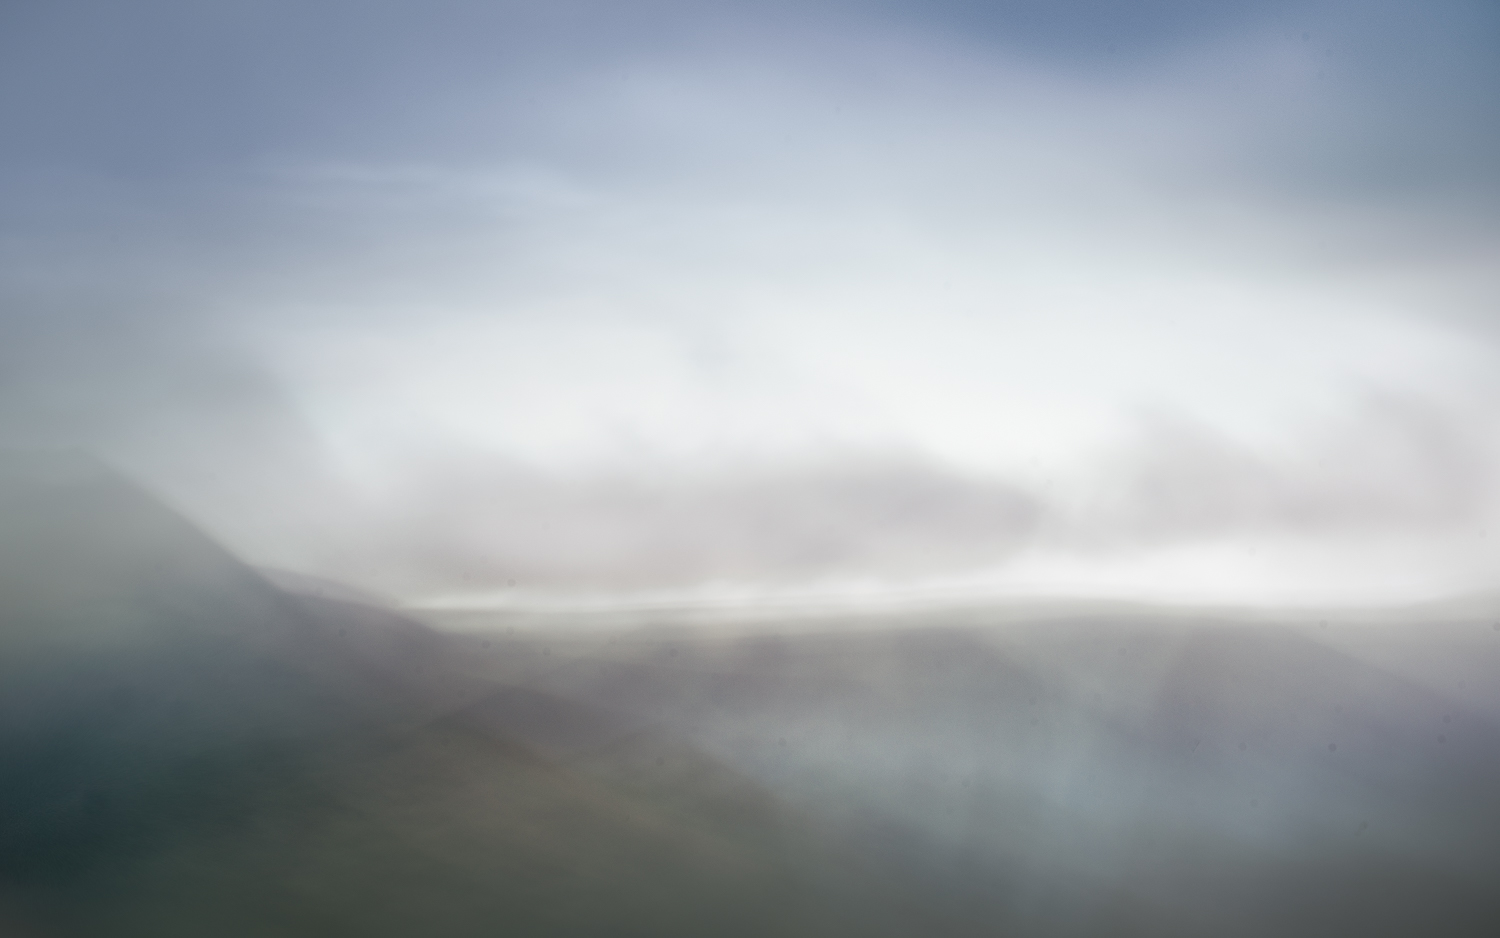 Descending from Mam Tor, there was a break in the clouds that had foiled our sunrise photo shoot. A little bit of wiggle and a 5 second exposure seemed to do the trick.